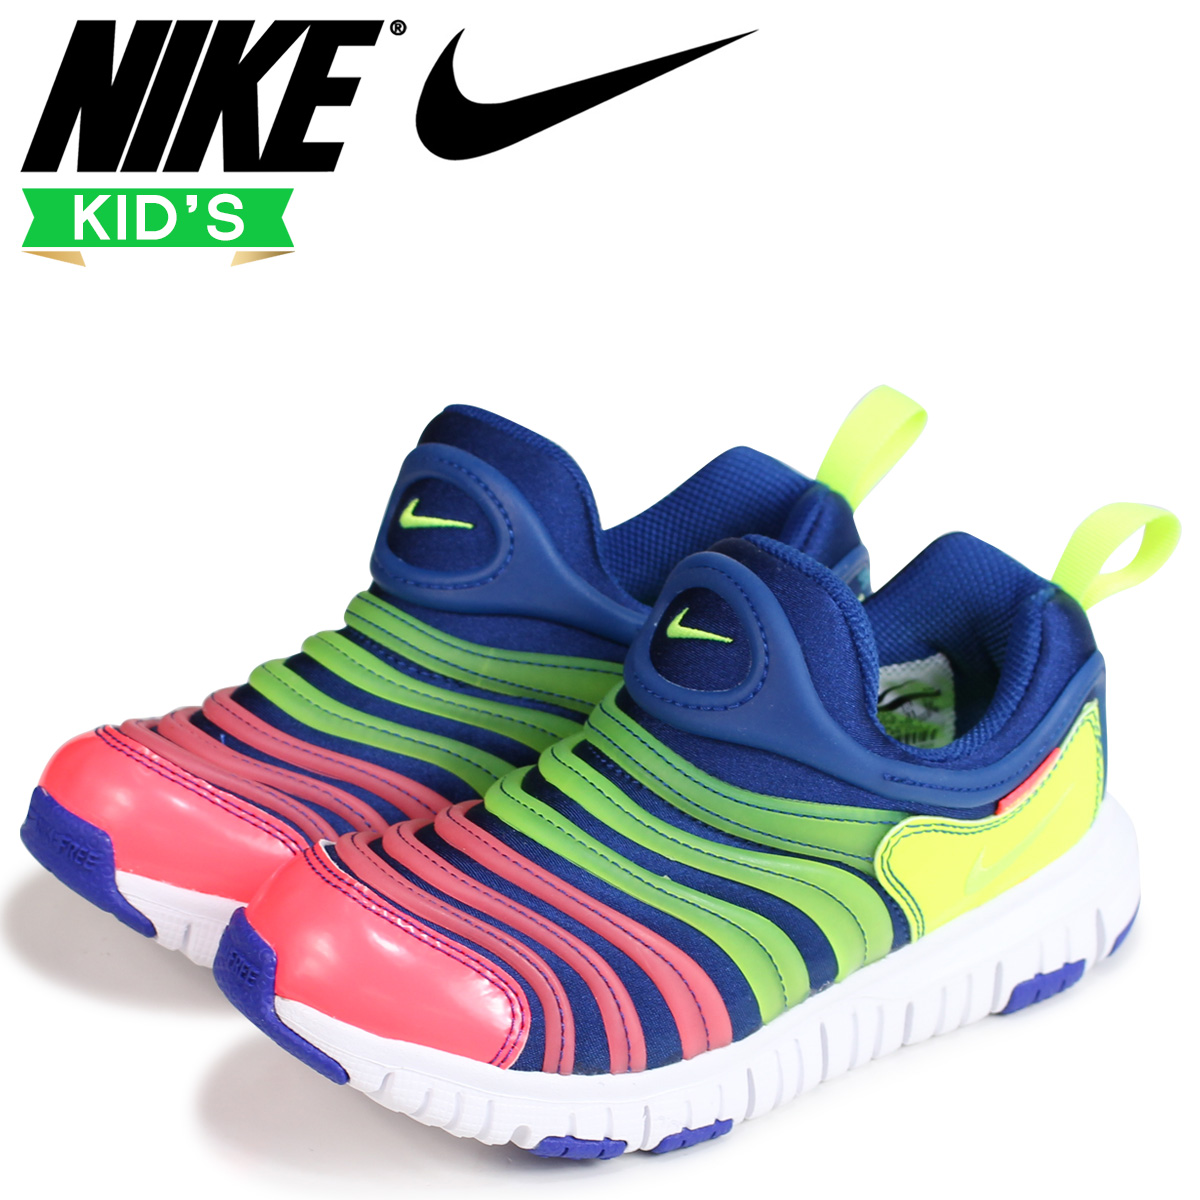 NIKE Nike dynamo-free kids sneakers DYNAMO FREE SE PS AA7216-400 blue  load  planned Shinnyu load in reservation product 7 20 containing  b1af6003ea57